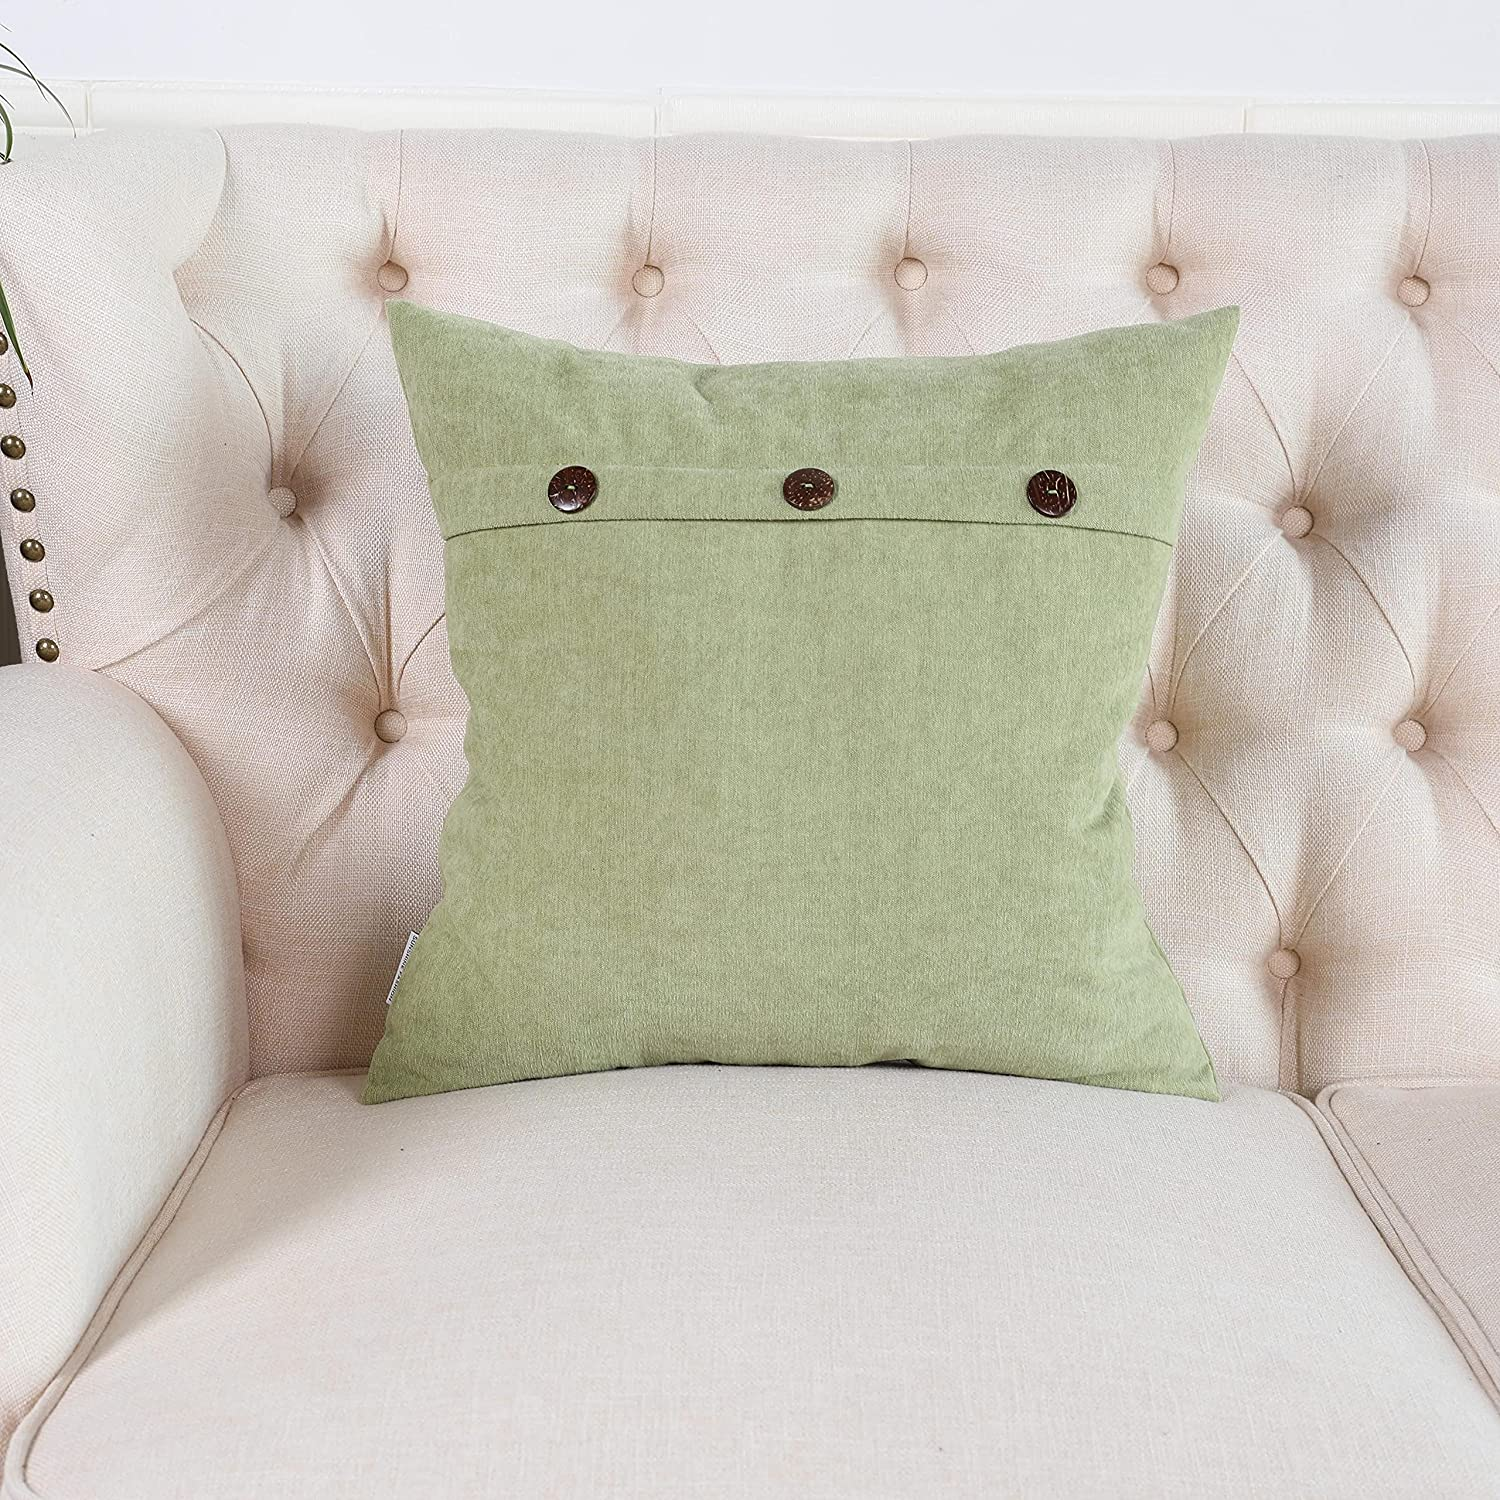 SUNSHINE FASHION Set of 1 Decorative Chenille Throw Pillow Covers Cushion Case Triple Button Vintage Farmhouse Pillowcase for Couch Sofa Bed (Apple Green, 18''X18'')